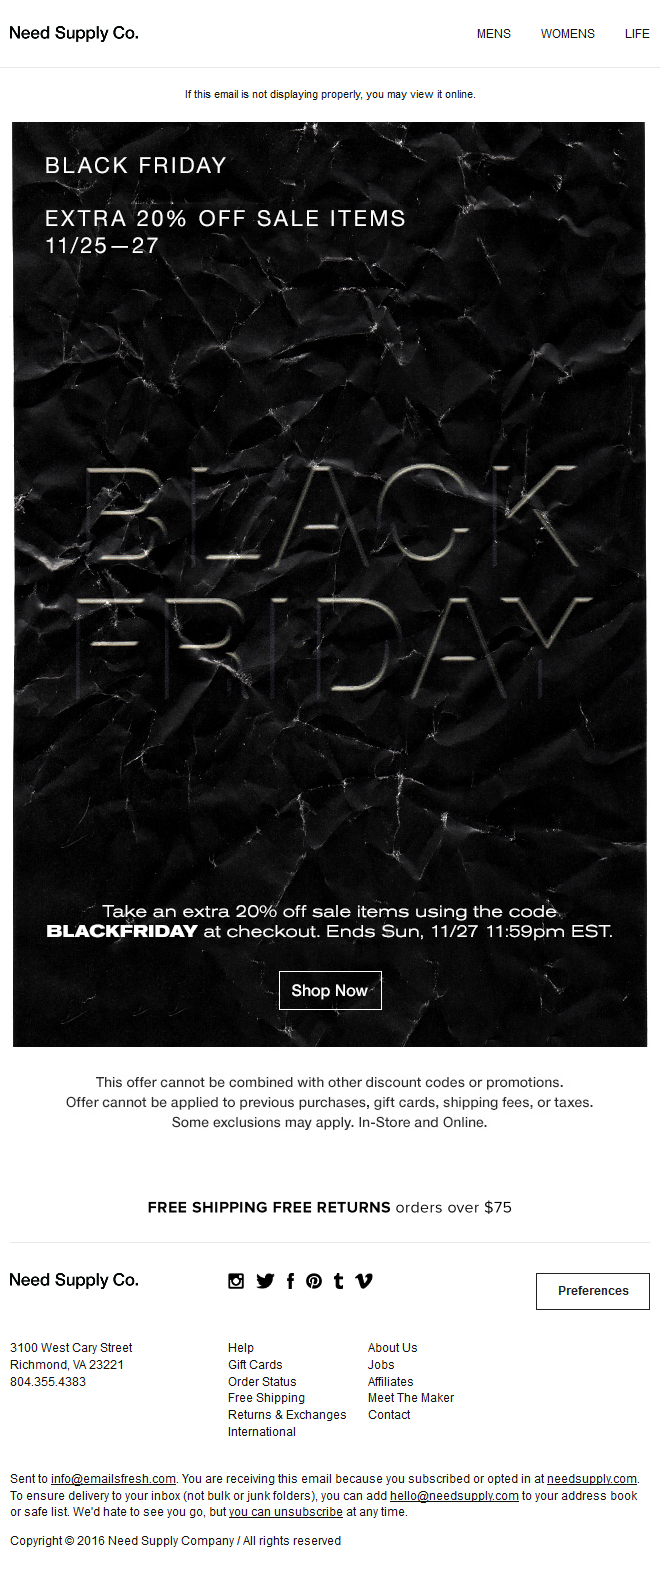 Need Supply Co. - BLACK FRIDAY - EXTRA 20% OFF SALE